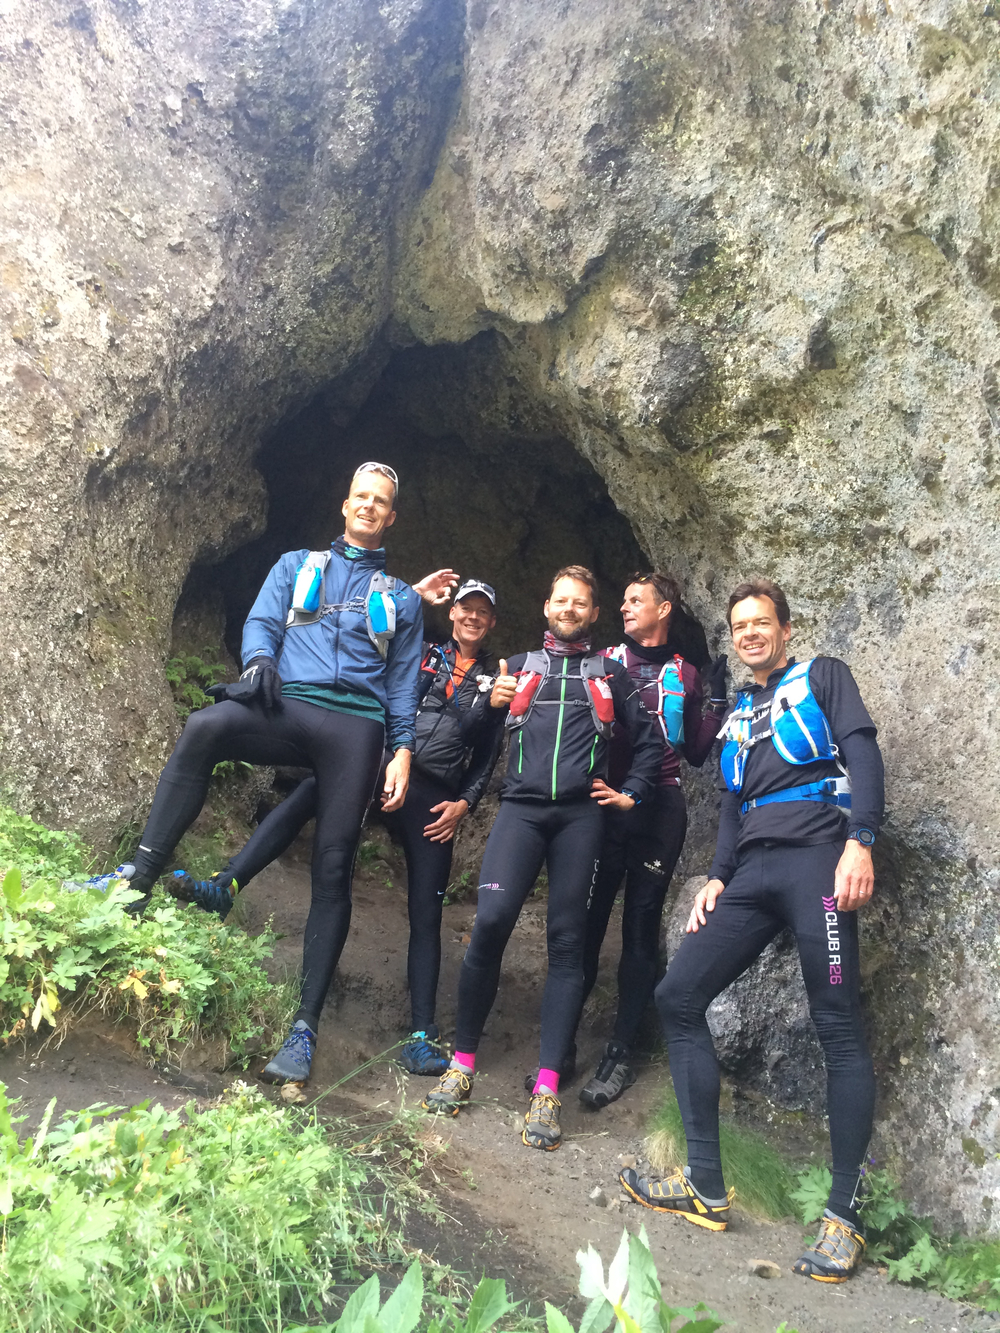 Runners relaxing in front of a Cave